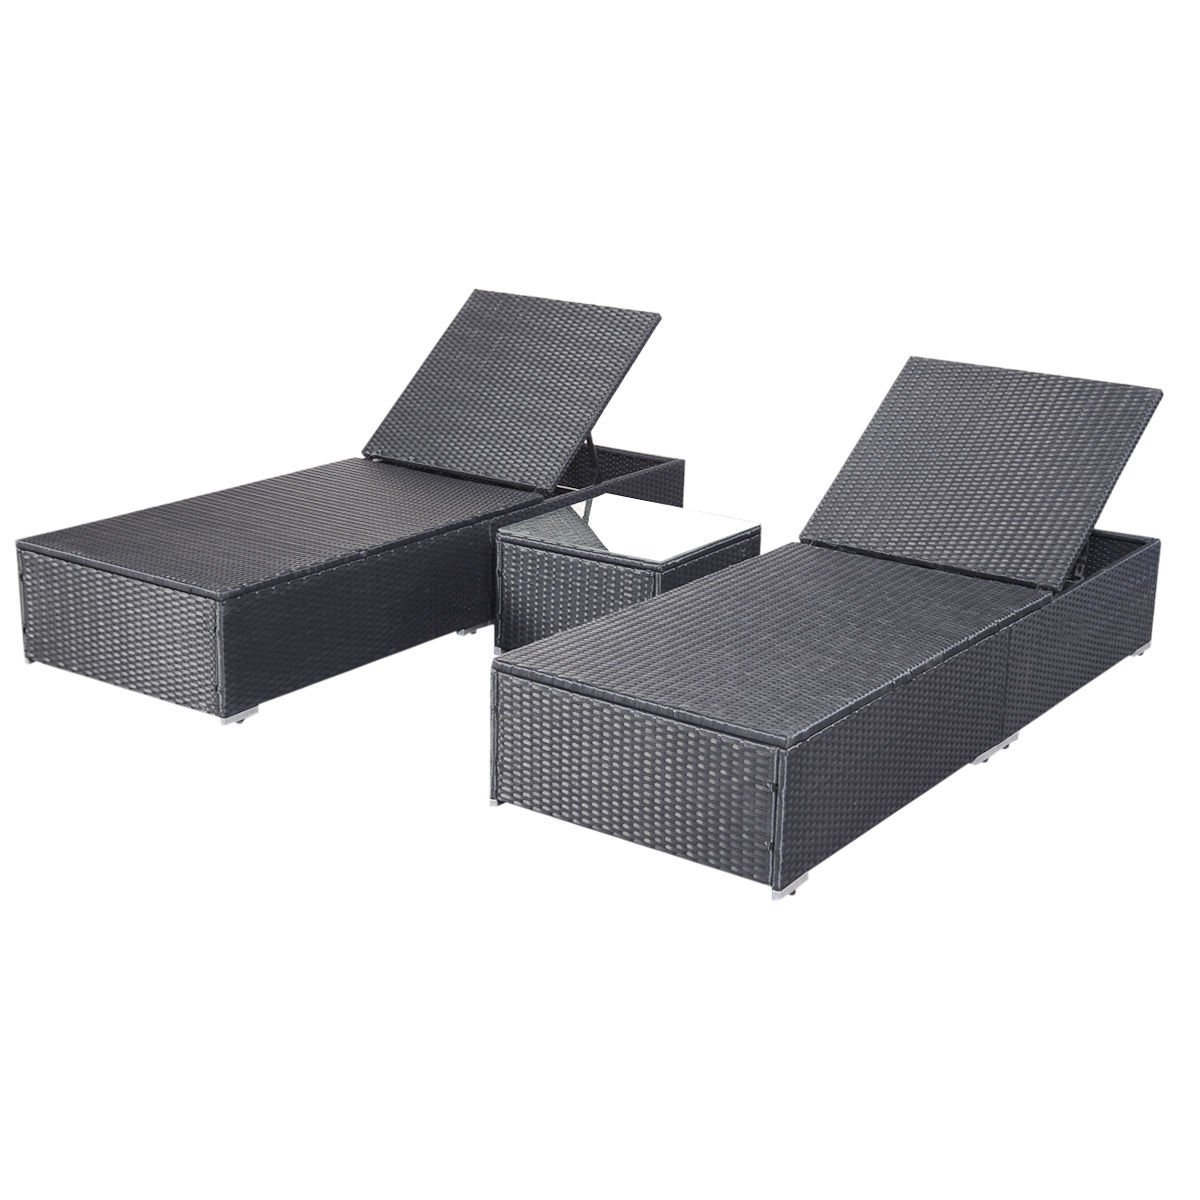 Fashionable Black Chaise Lounge Outdoor Chairs With Regard To Amazon : Tangkula 3 Pcs Wicker Outdoor Furniture Pool Chaise (View 5 of 15)